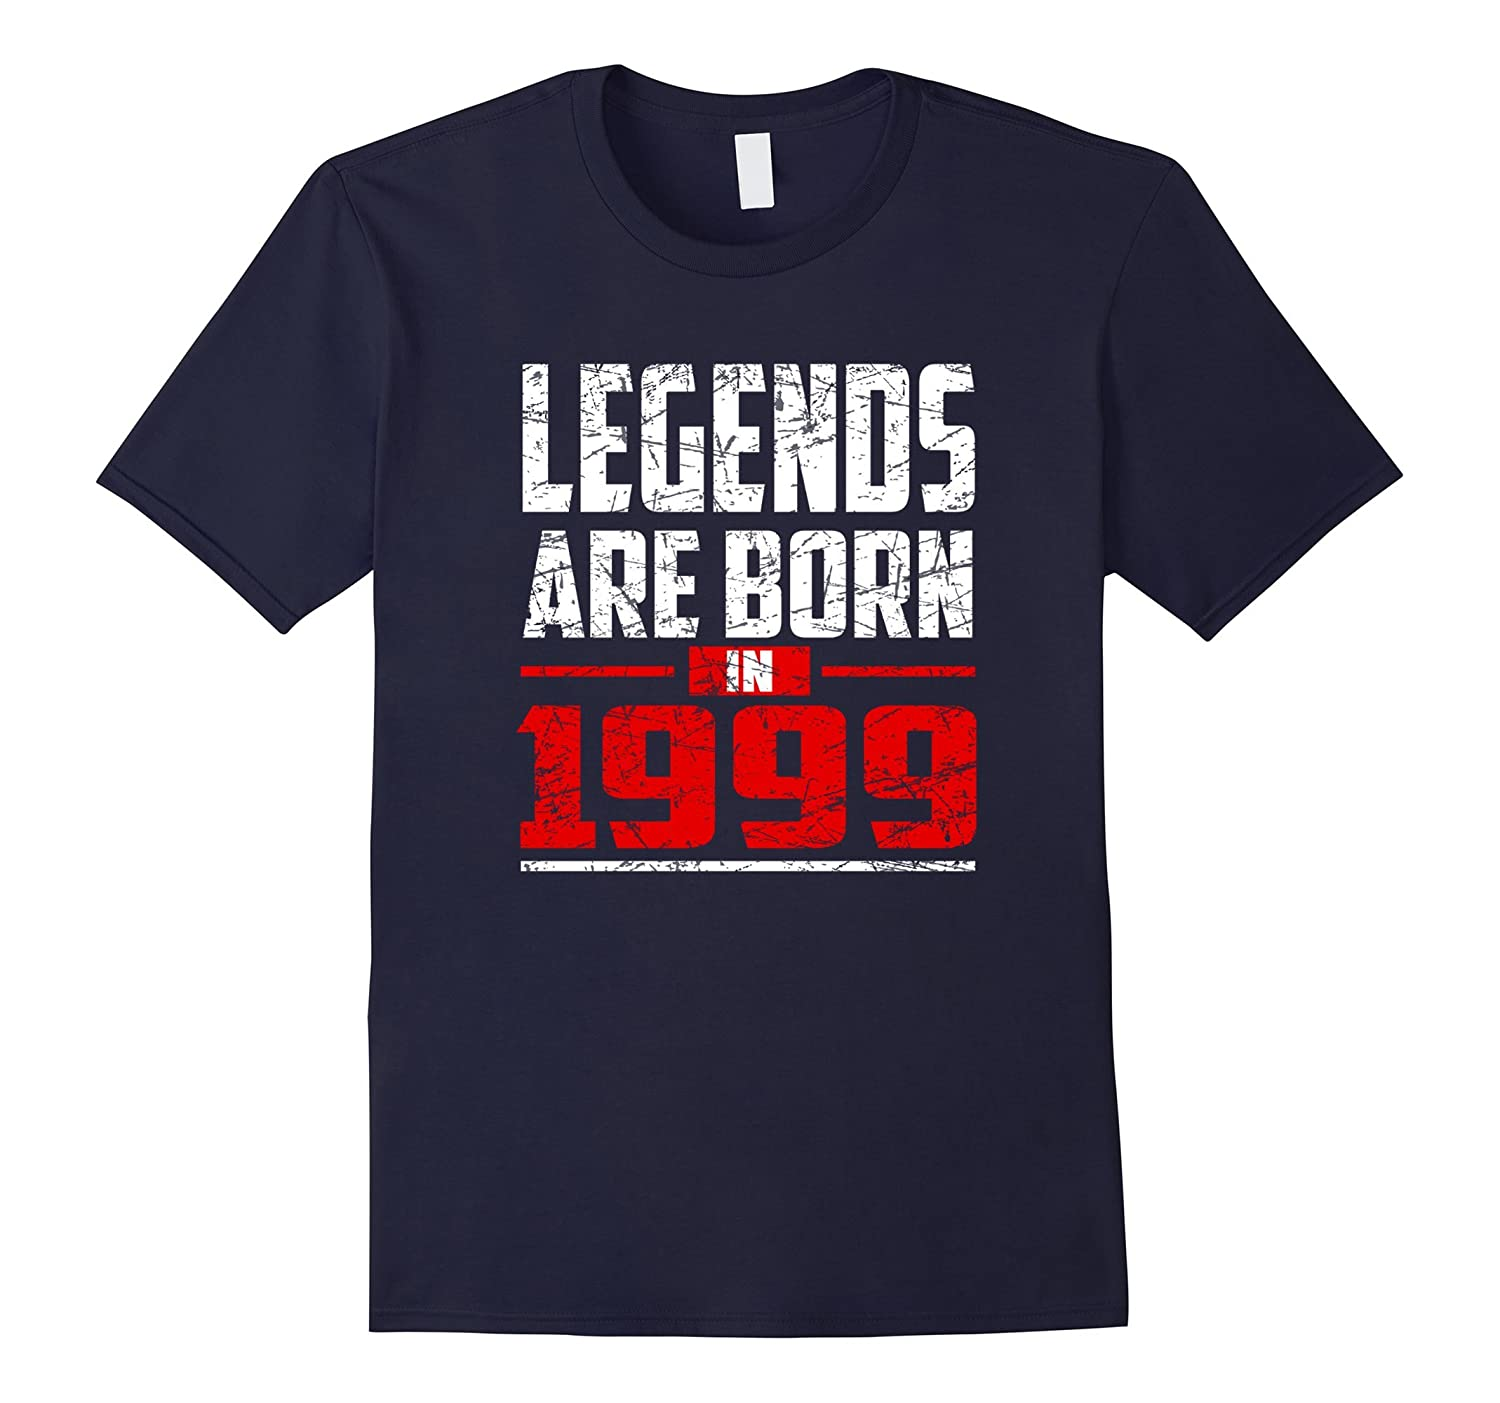 18th Birthday Gifts Boy Girls Legends Are Born in 1999 Shirt-Vaci